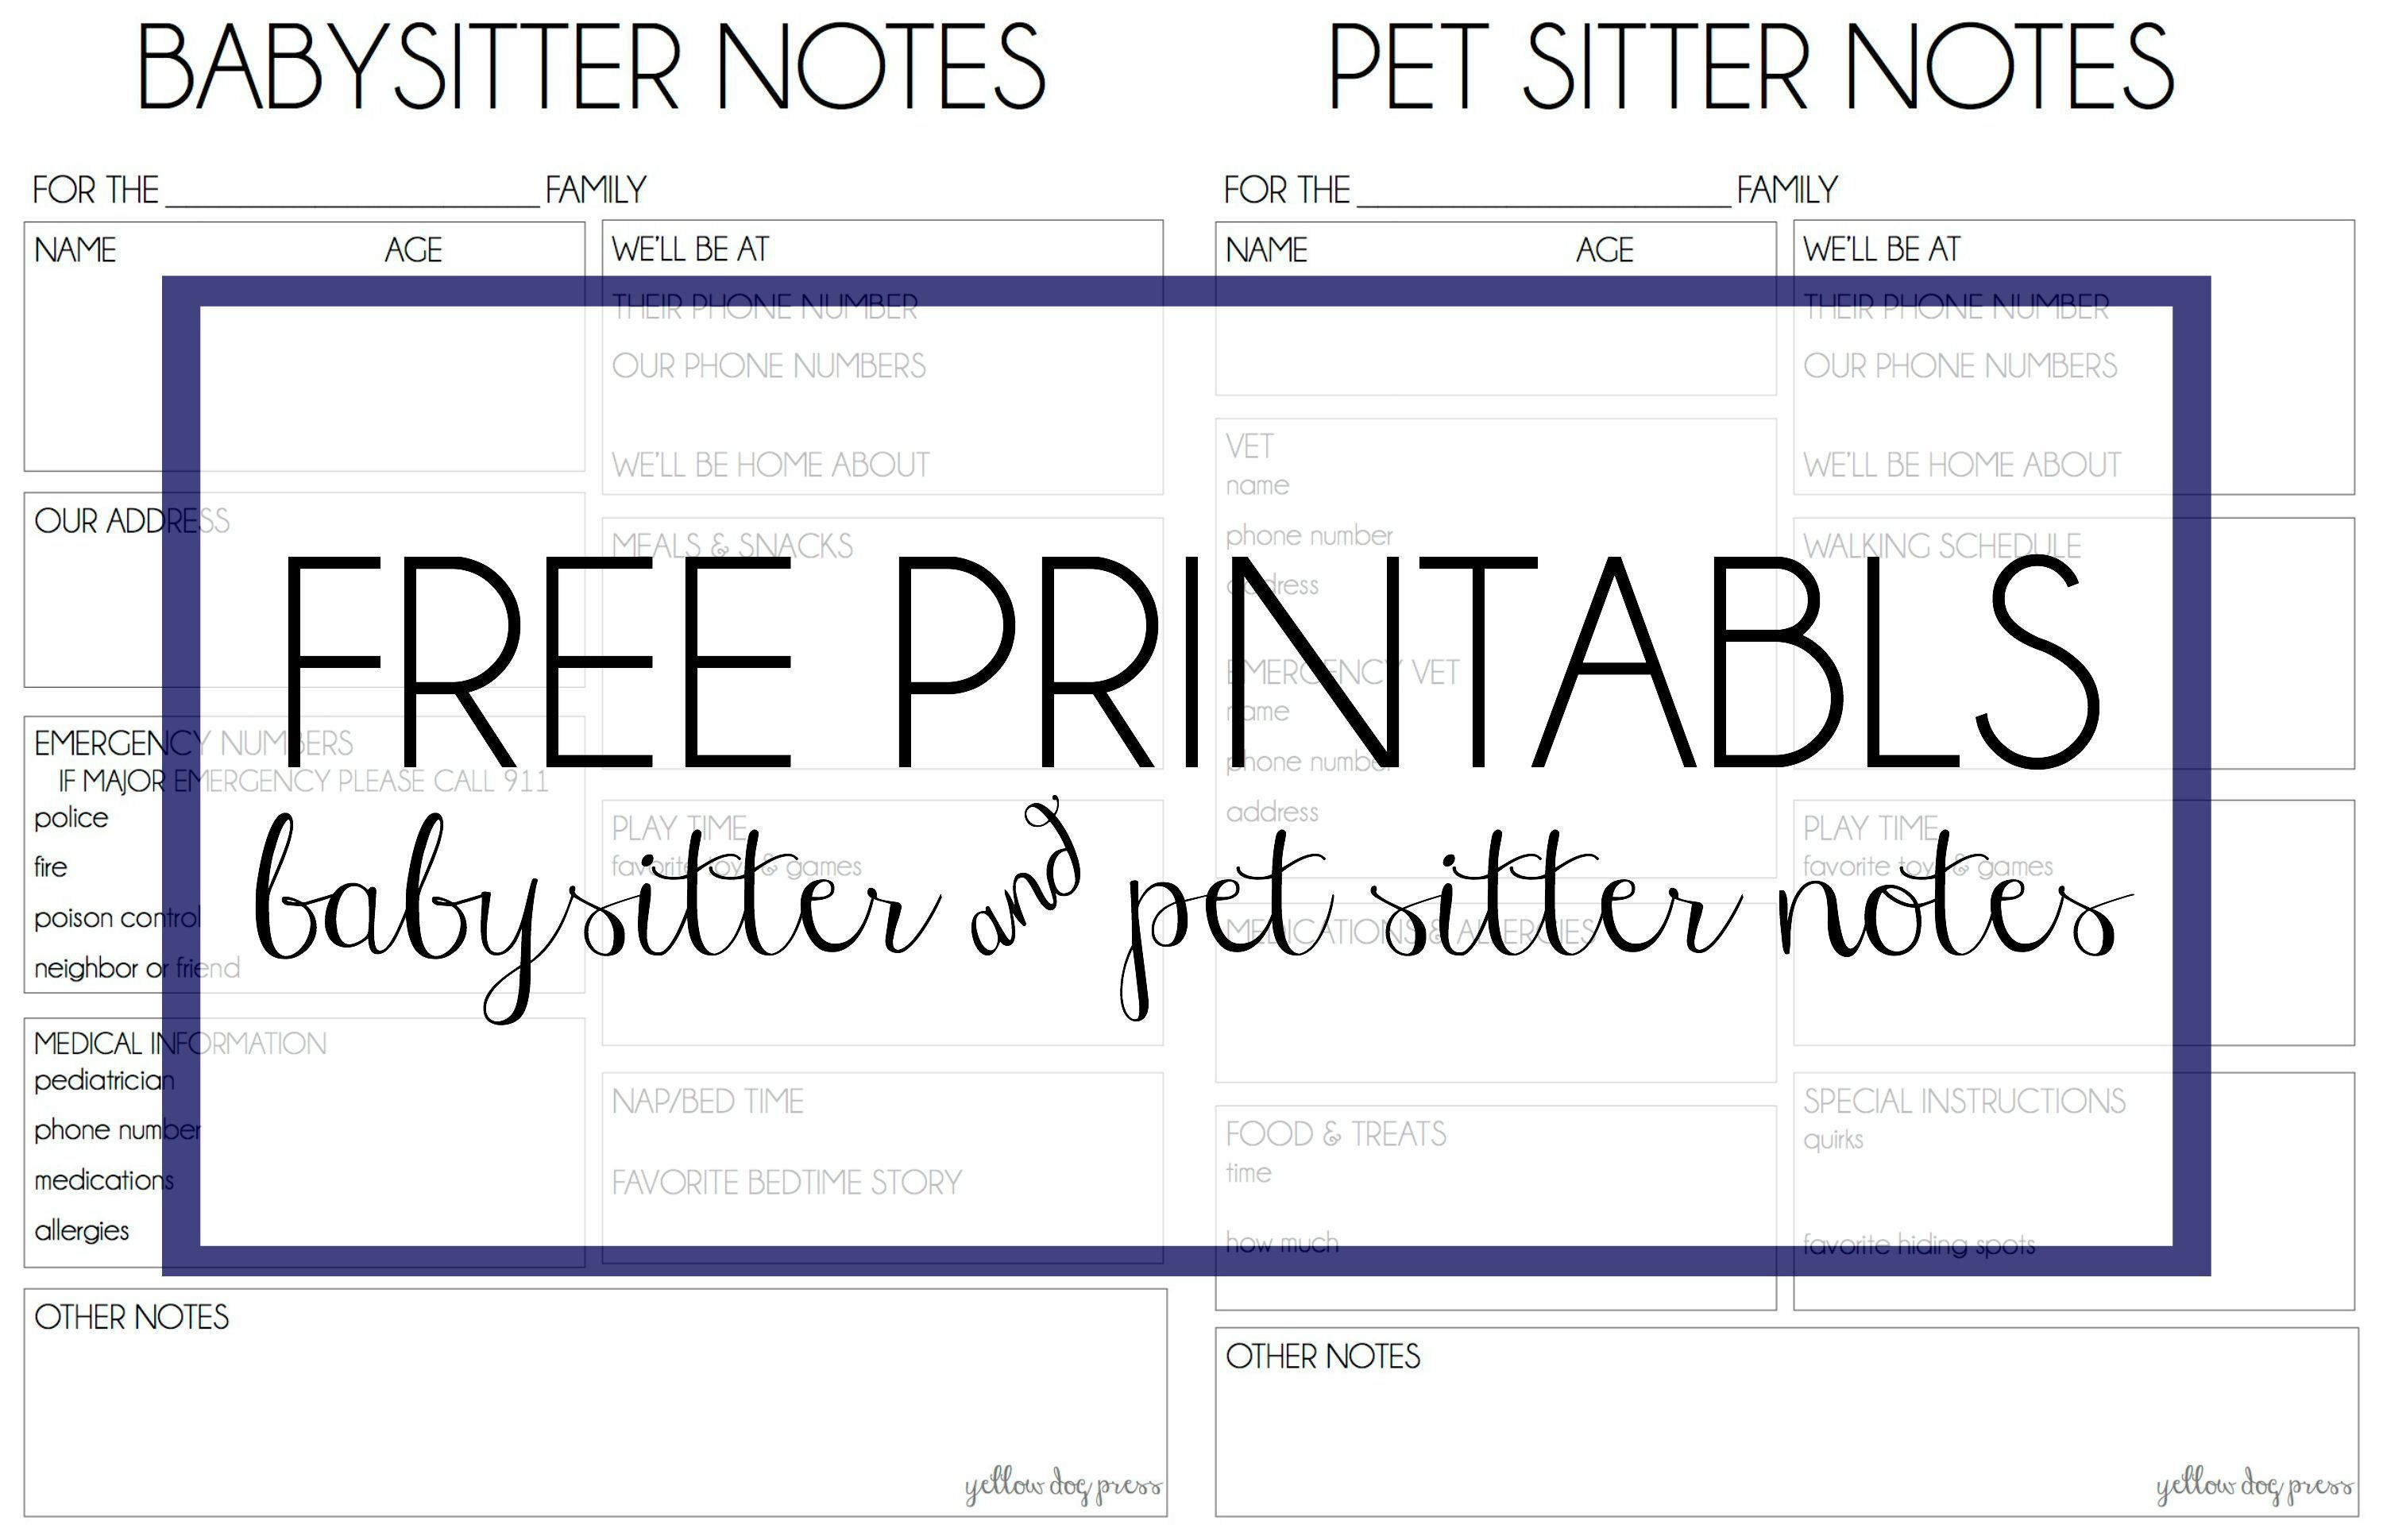 Babysitter Amp Pet Sitter Notes